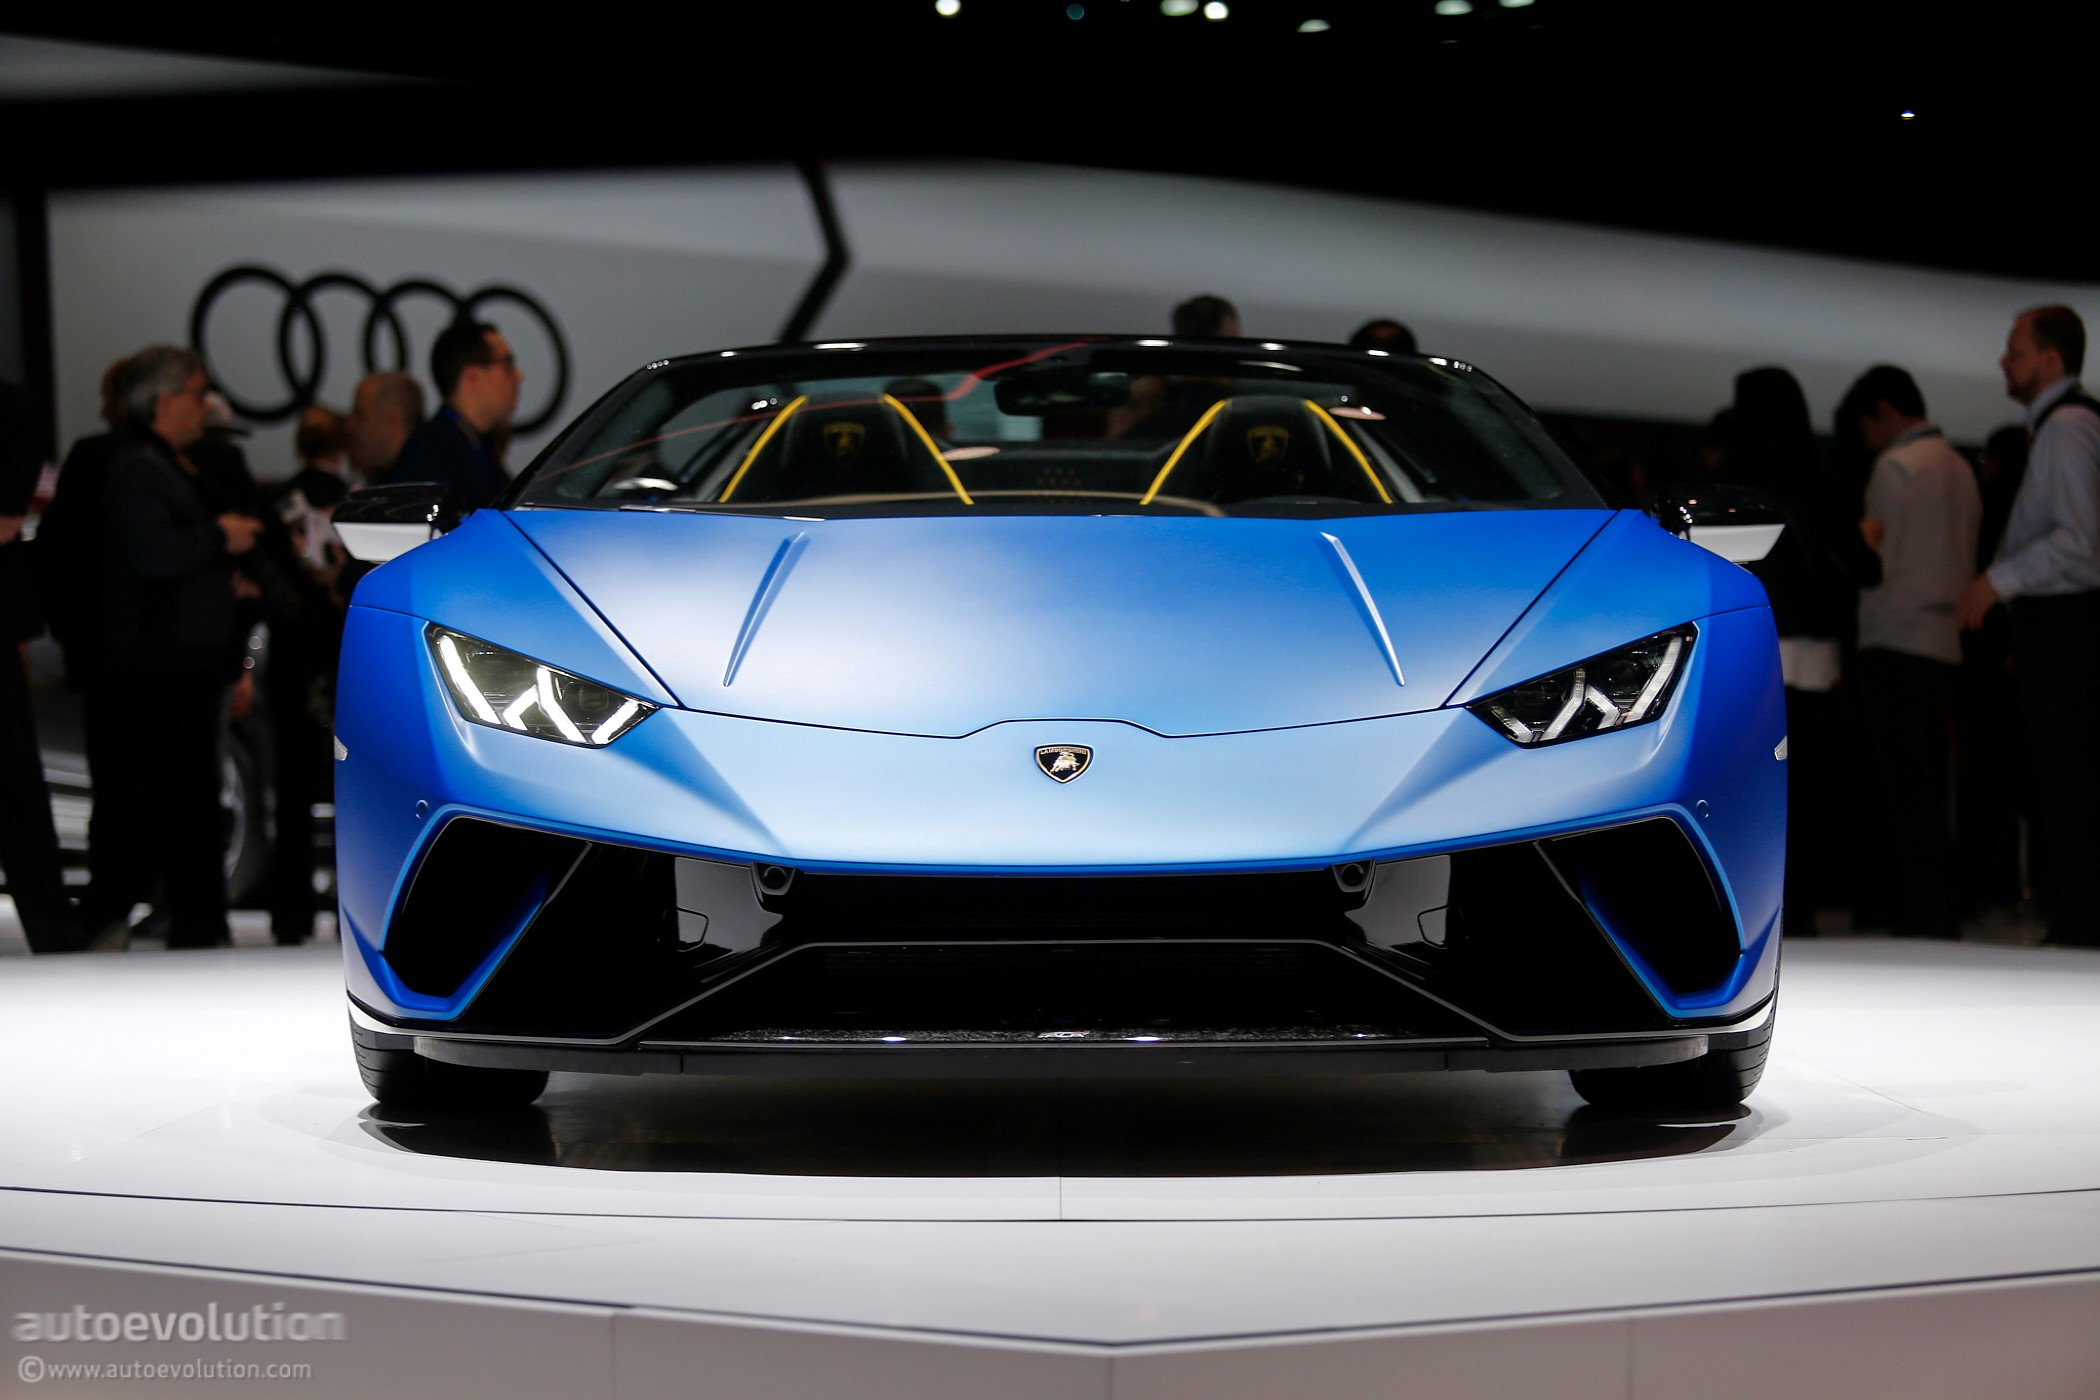 2019 Lamborghini Huracan Performante Spyder Makes Jaws Drop